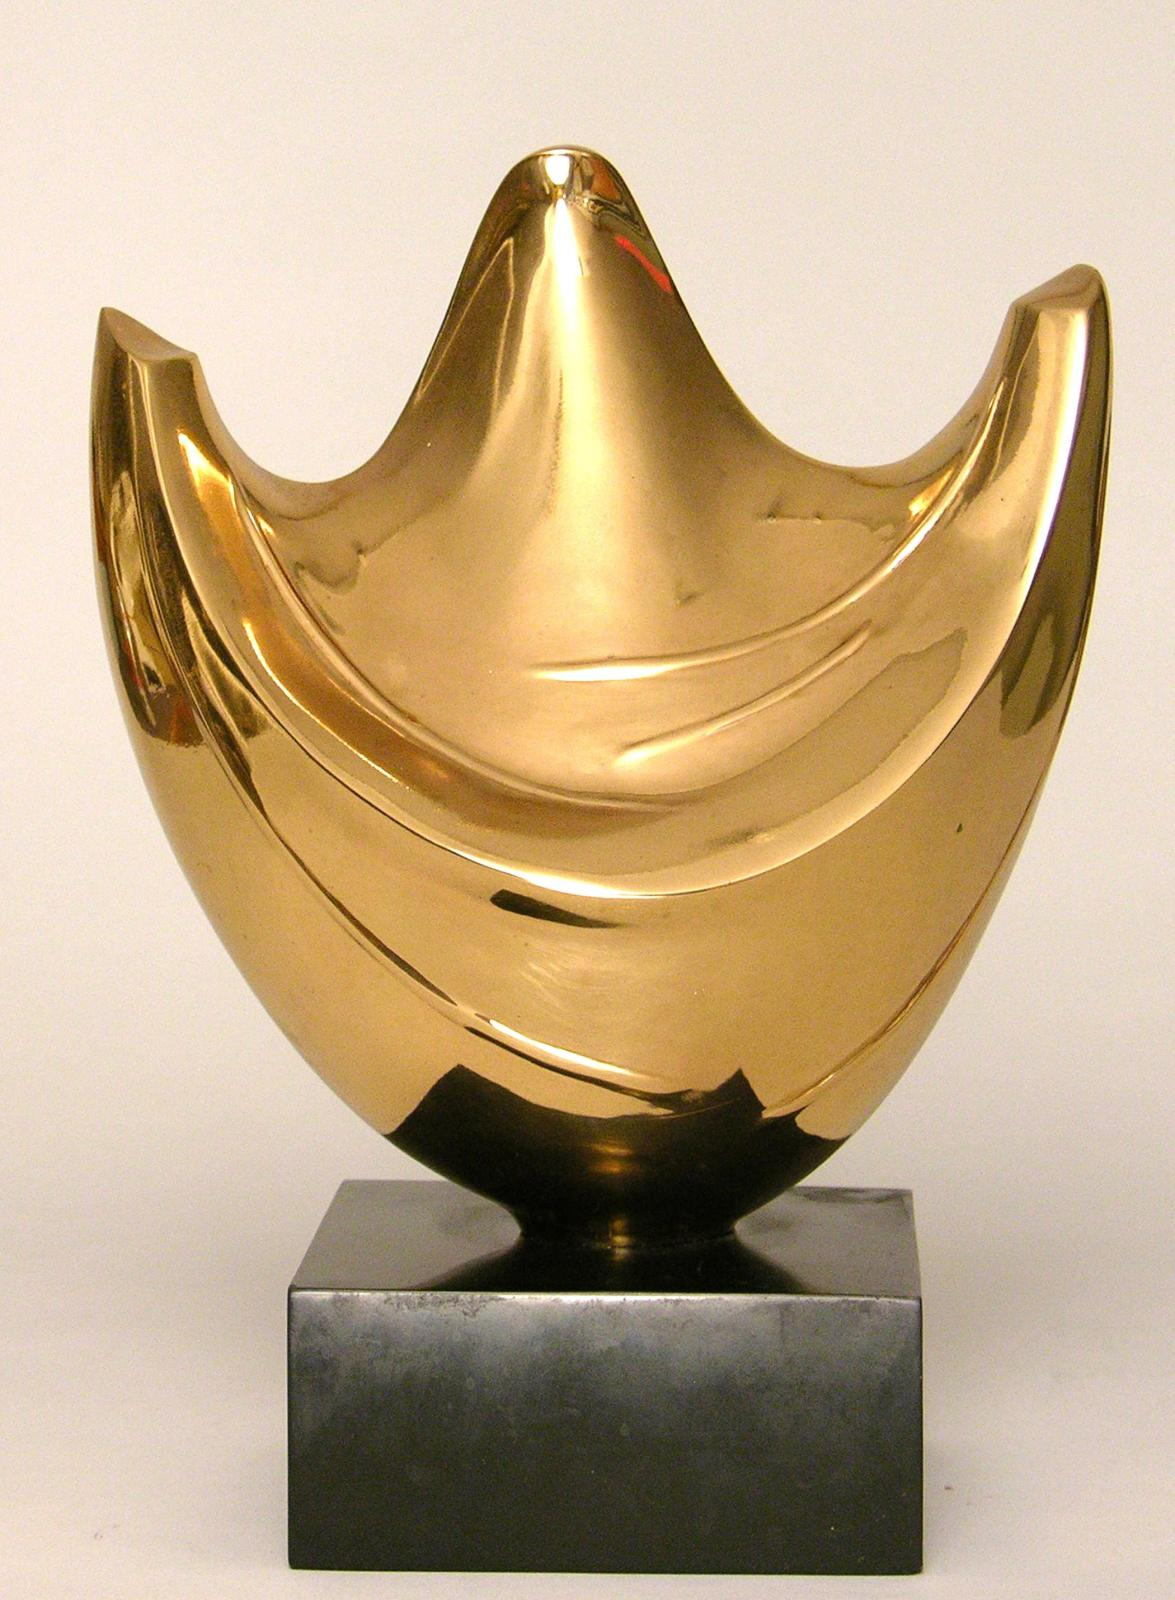 A polished bronze sculpture, an abstracted figure with arms raised